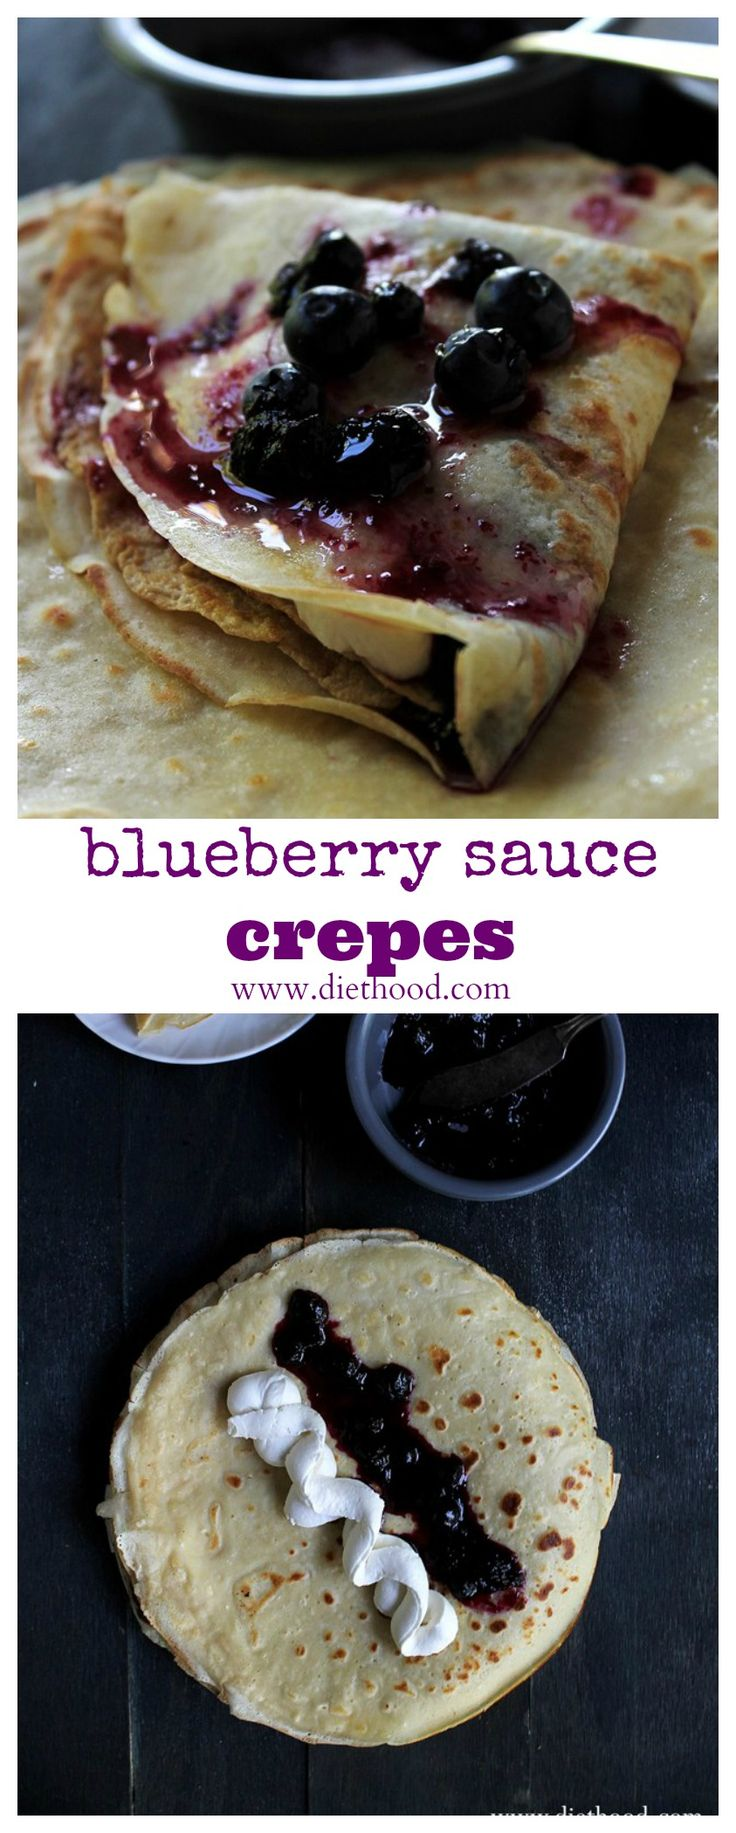 Blueberry Sauce Crepes with Honey Whipped Cream